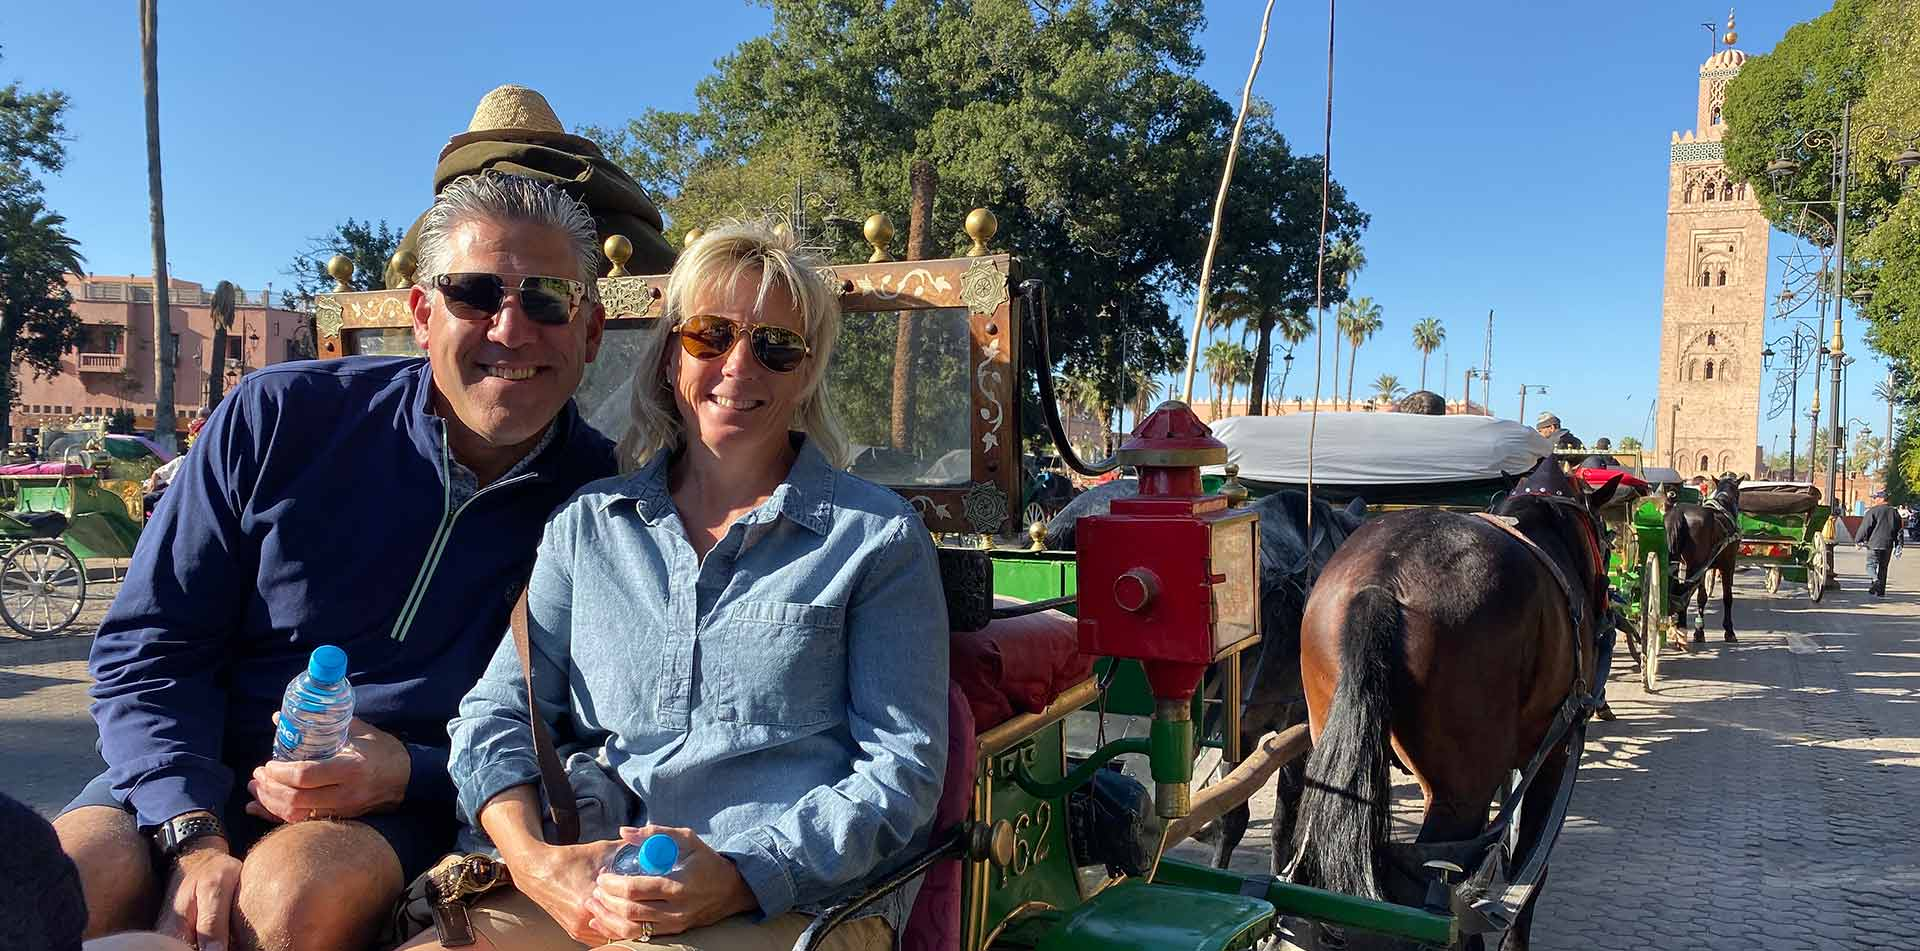 Africa Morocco Marrakesh happy smiling couple on horse-drawn carriage ride through the city - luxury vacation destinations